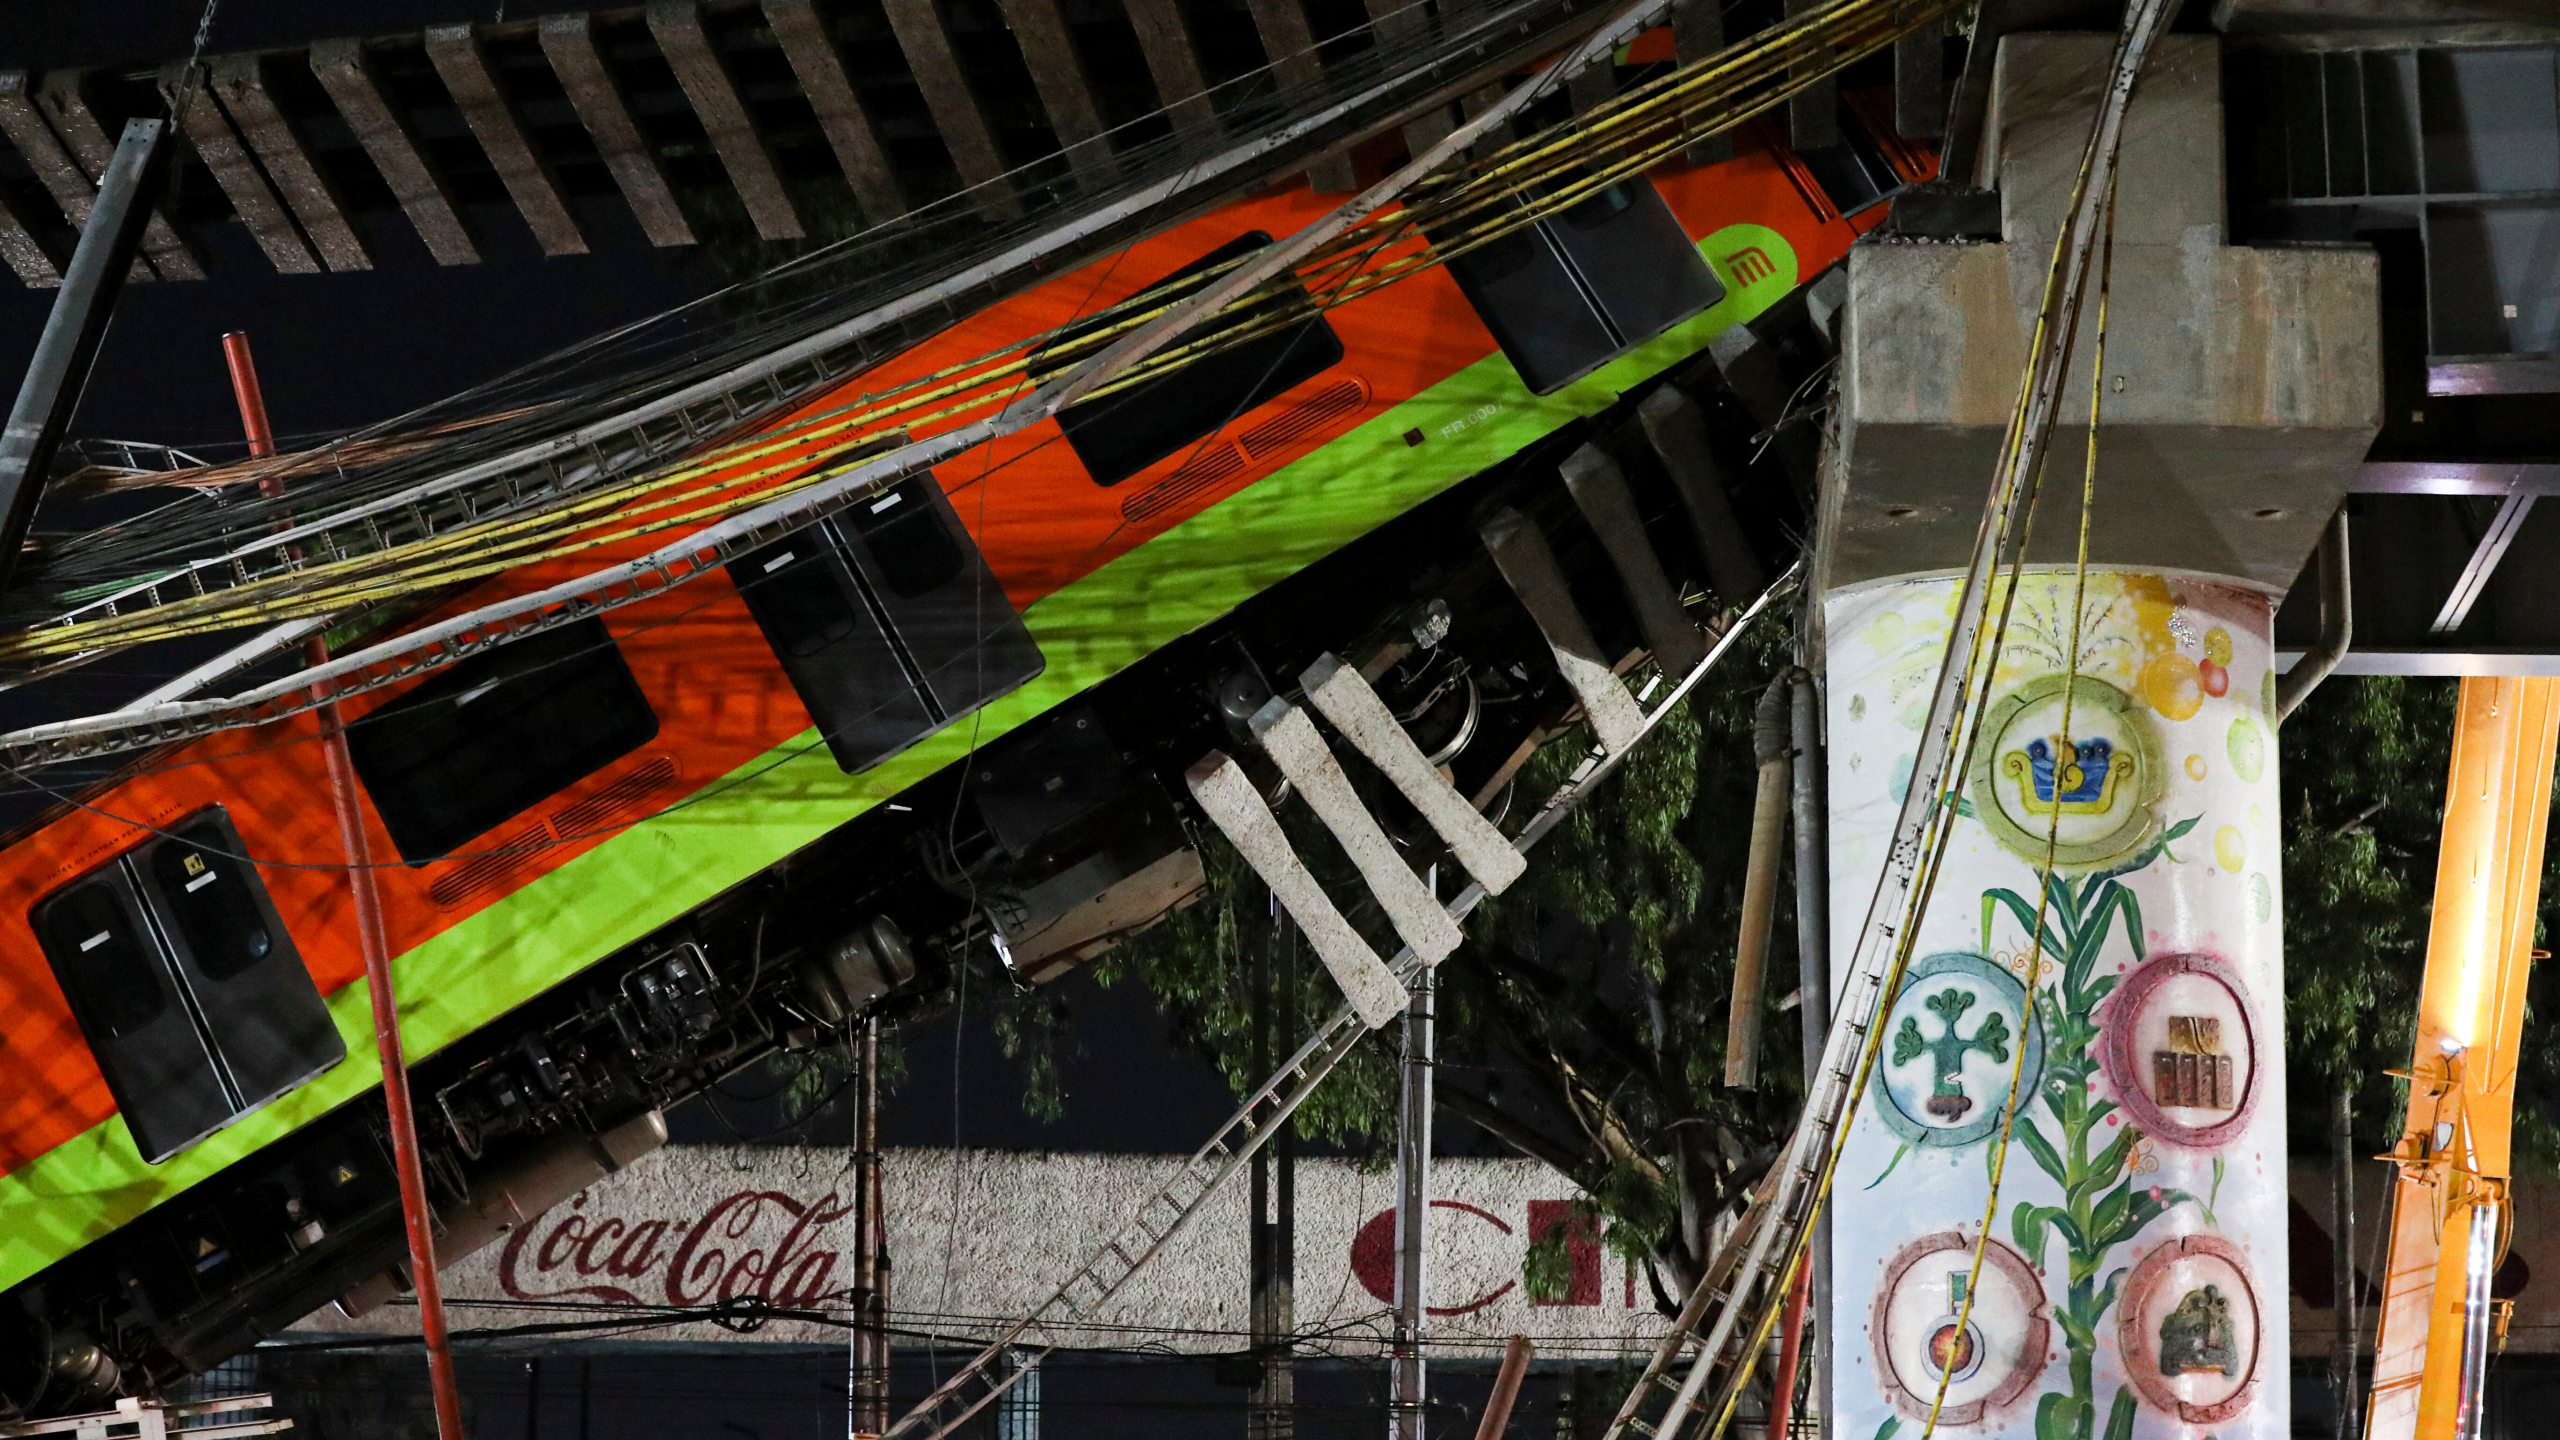 Mexico City's subway cars lay at an angle after a section of Line 12 of the subway collapsed in Mexico City on May 4, 2021. (Marco Ugarte / Associated Press)